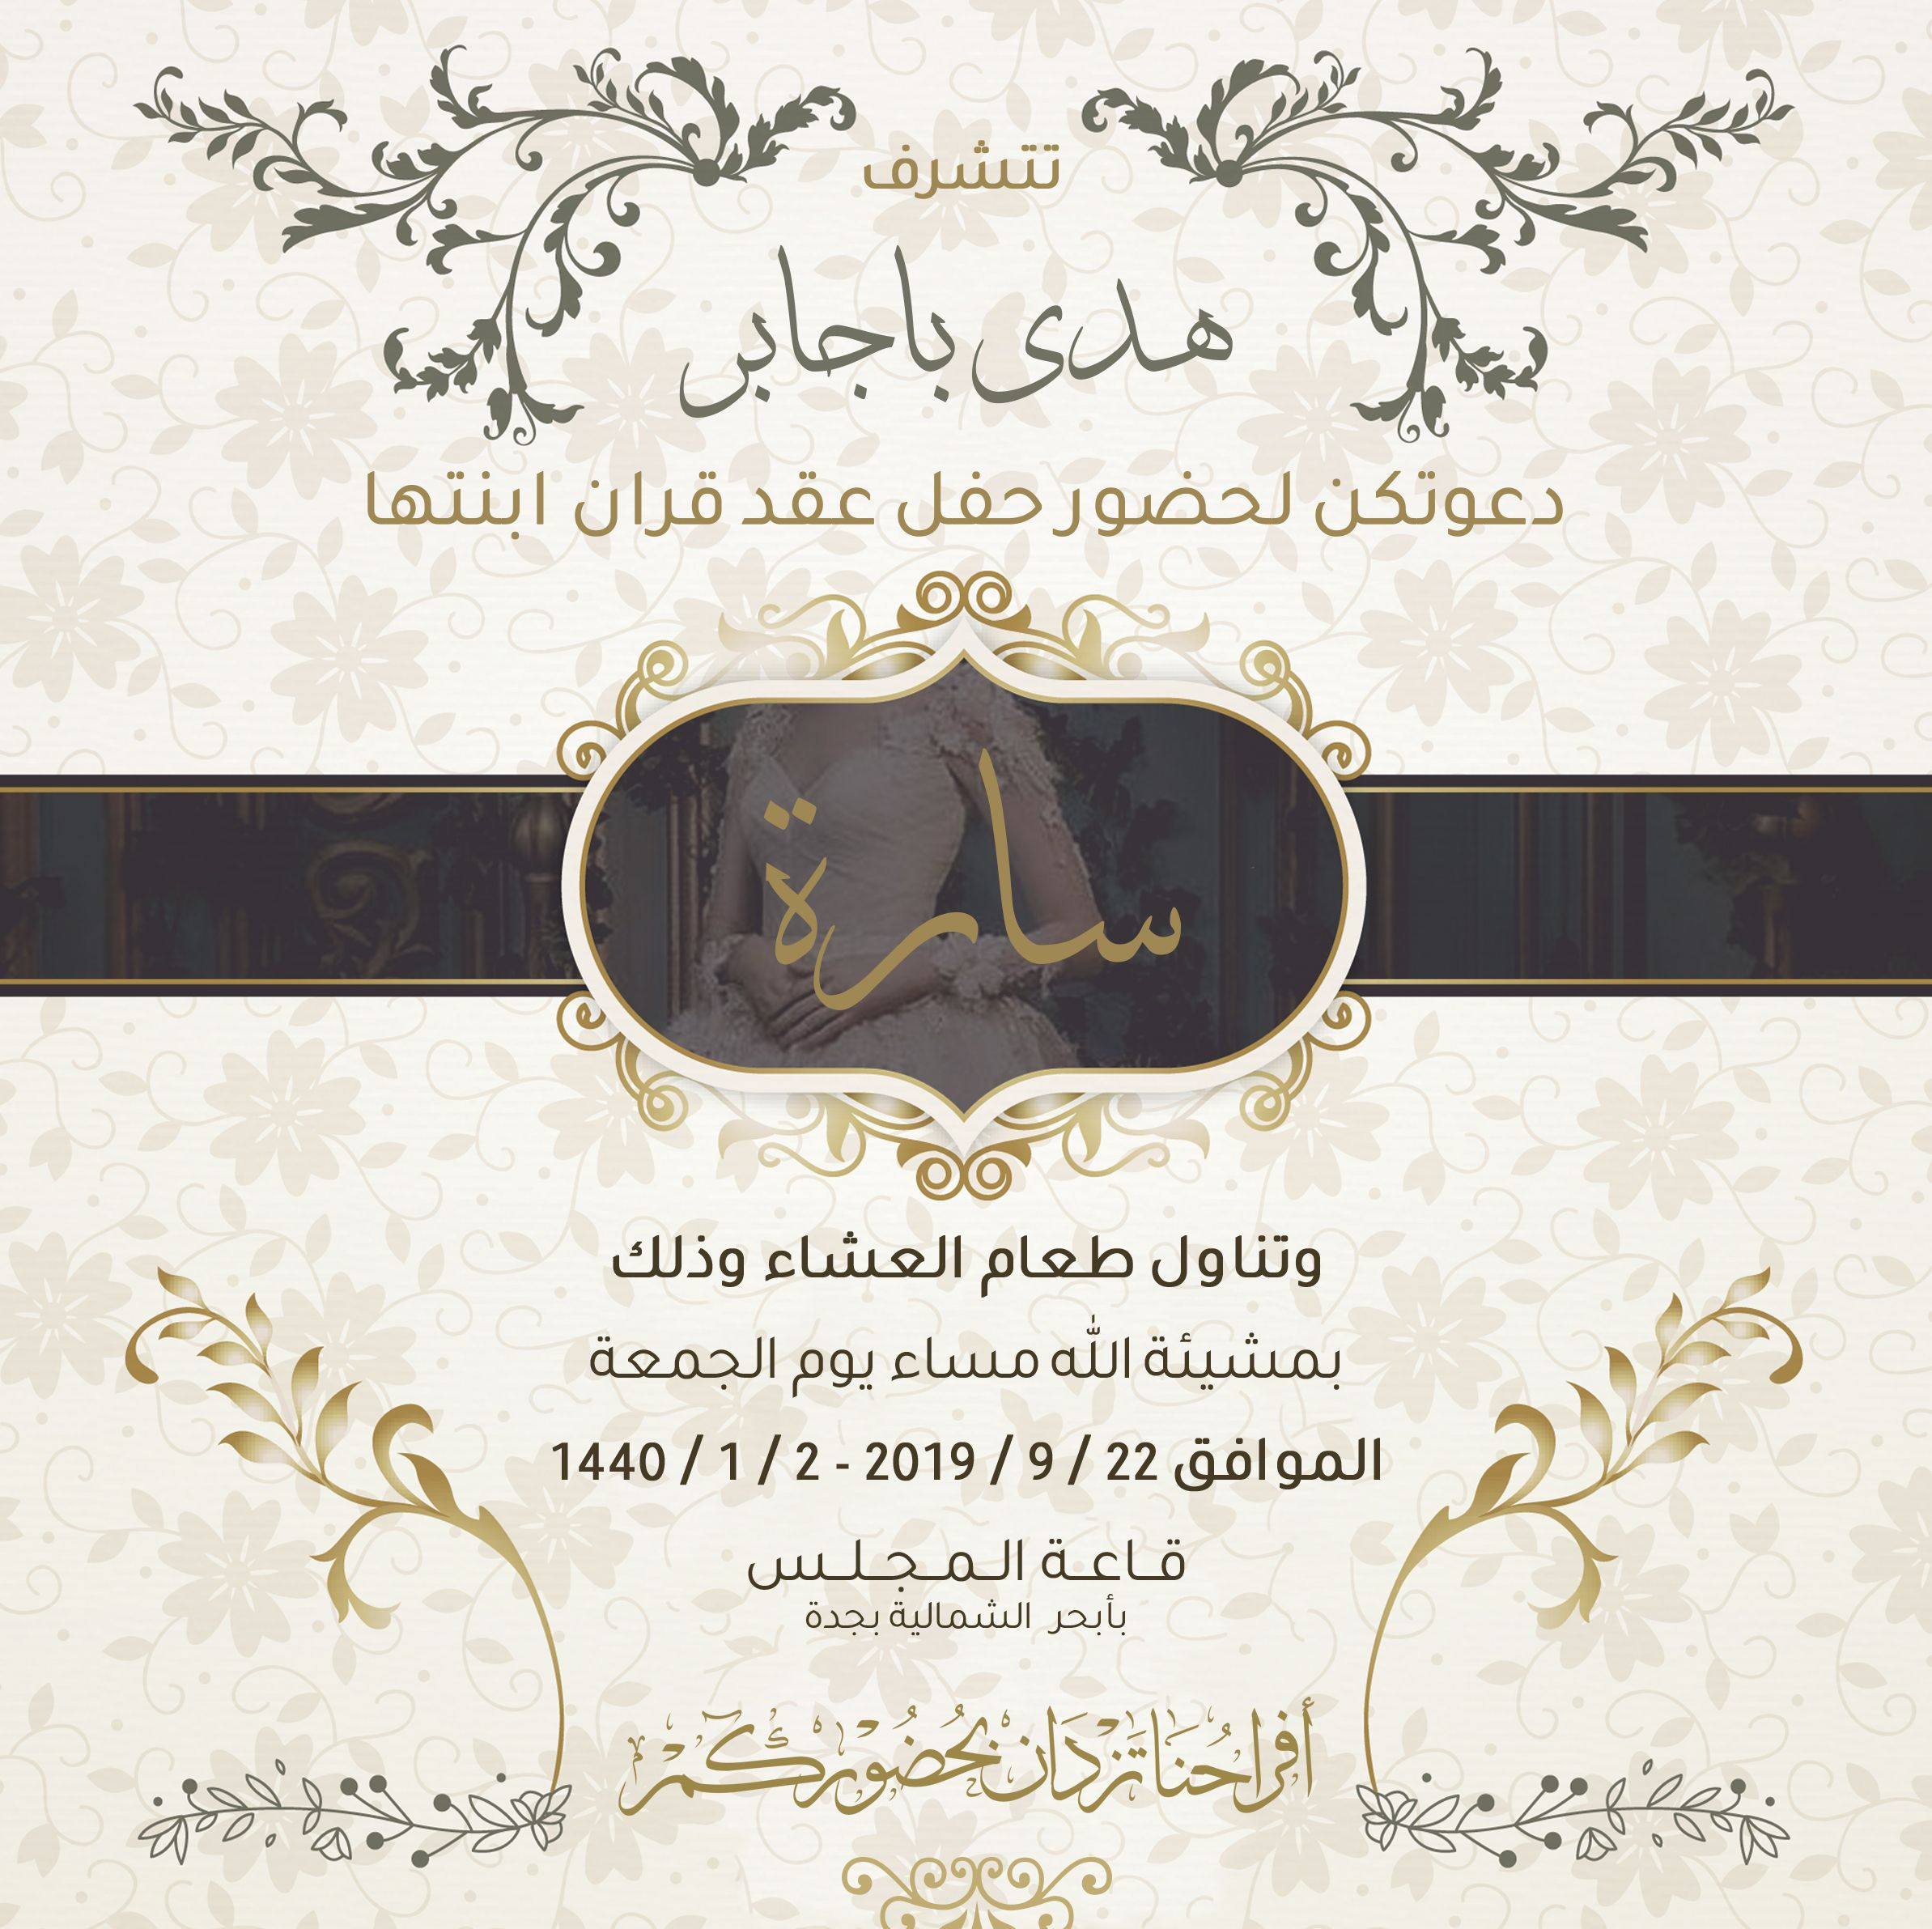 دعوة زواج 15 Wedding Cards Images Outline Art Wedding Cards